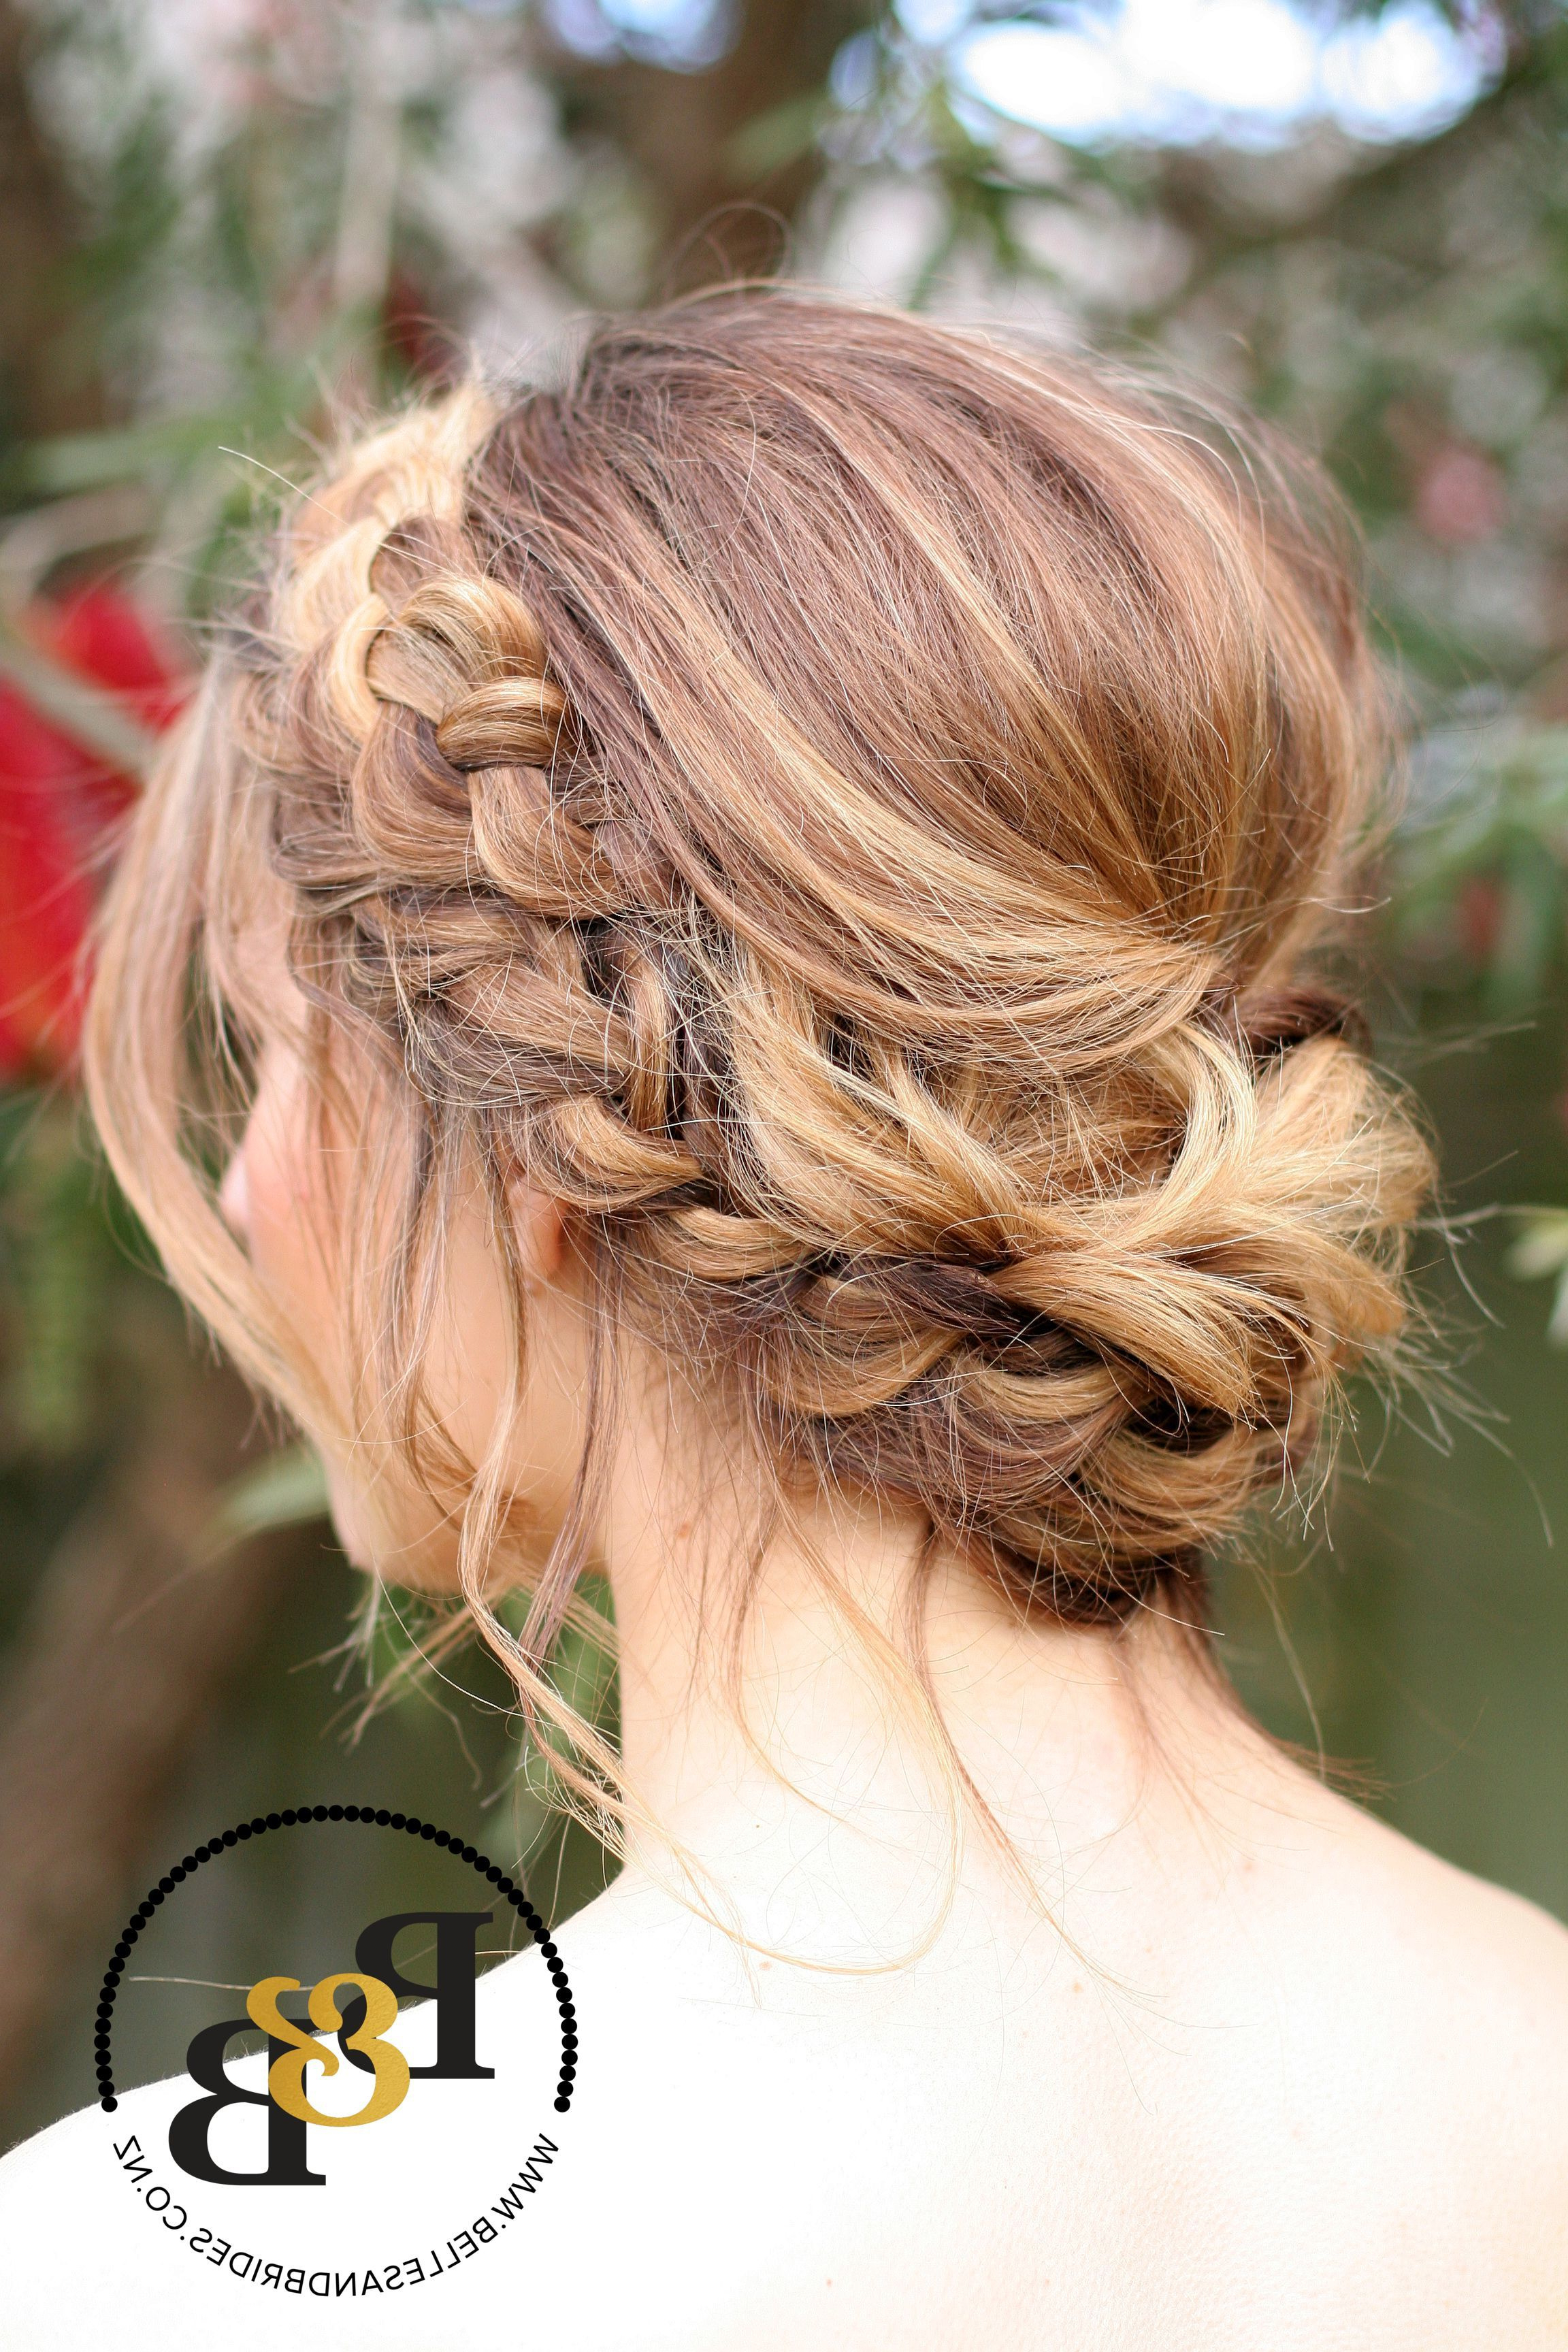 Preferred Braided Chignon Hairstyles Intended For Hairstyles : Chic Braided Chignon Superb Wedding Hair With (Gallery 14 of 20)